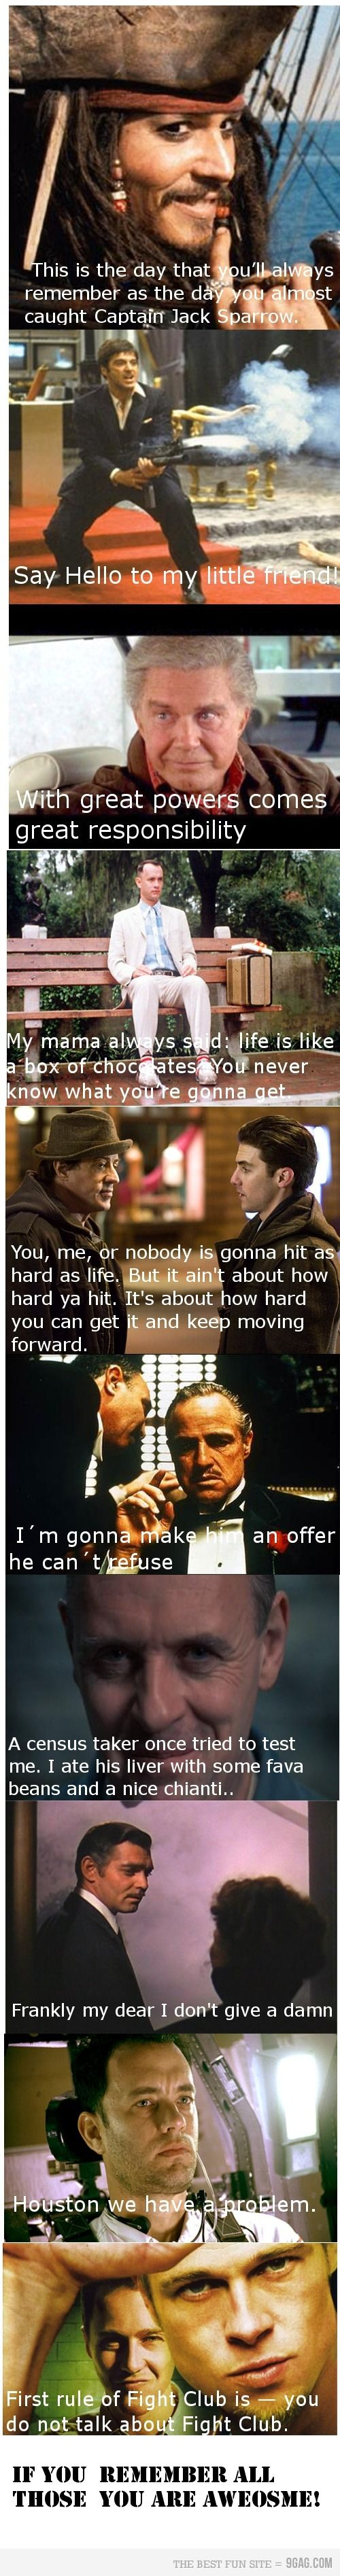 Awesome movie quotes are awesome #epicmovie